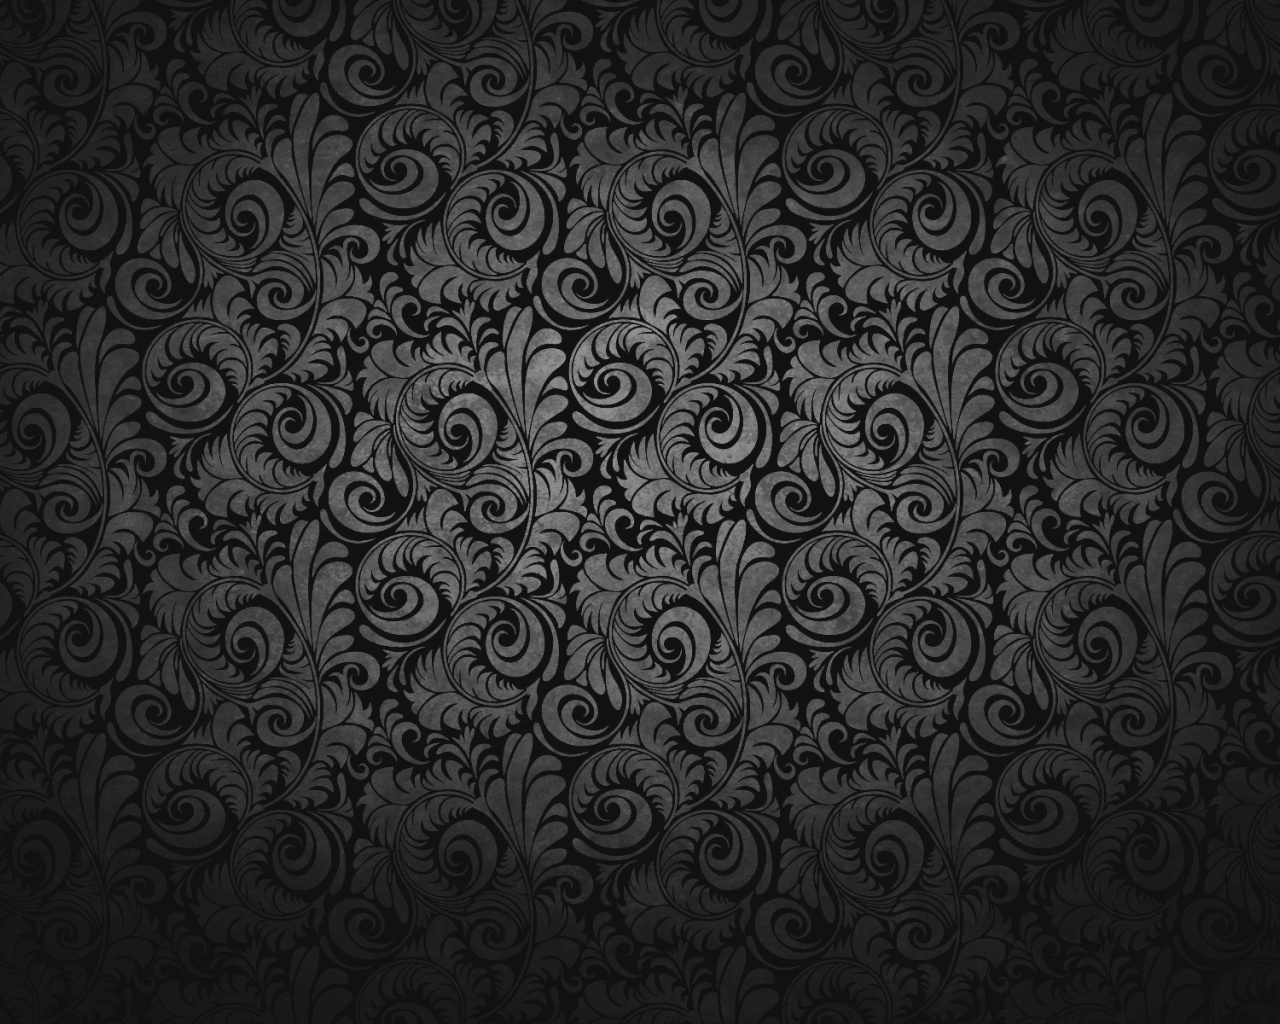 vintage-black-and-white-desktop-background